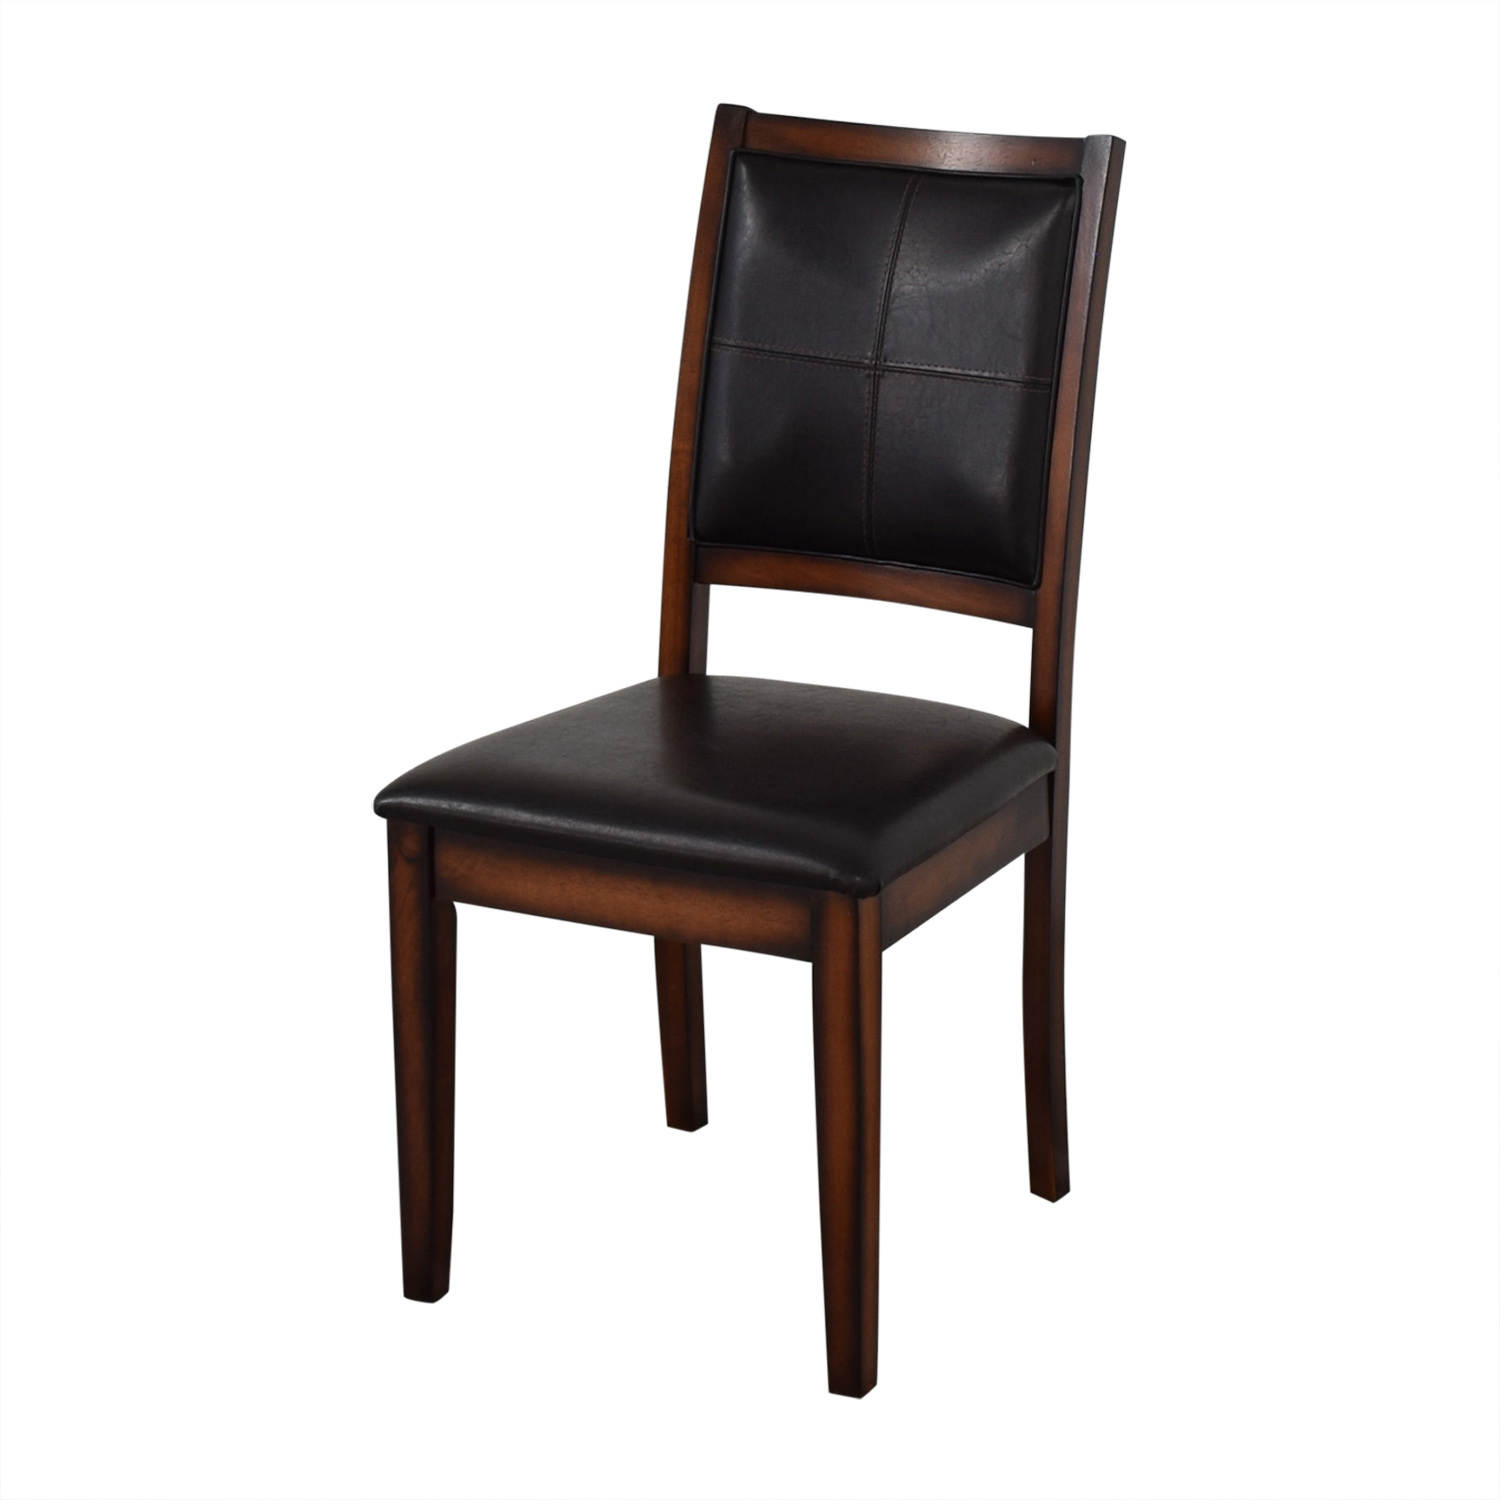 Raymour & Flanigan Raymour & Flanigan Upholstered Dining Chairs for sale